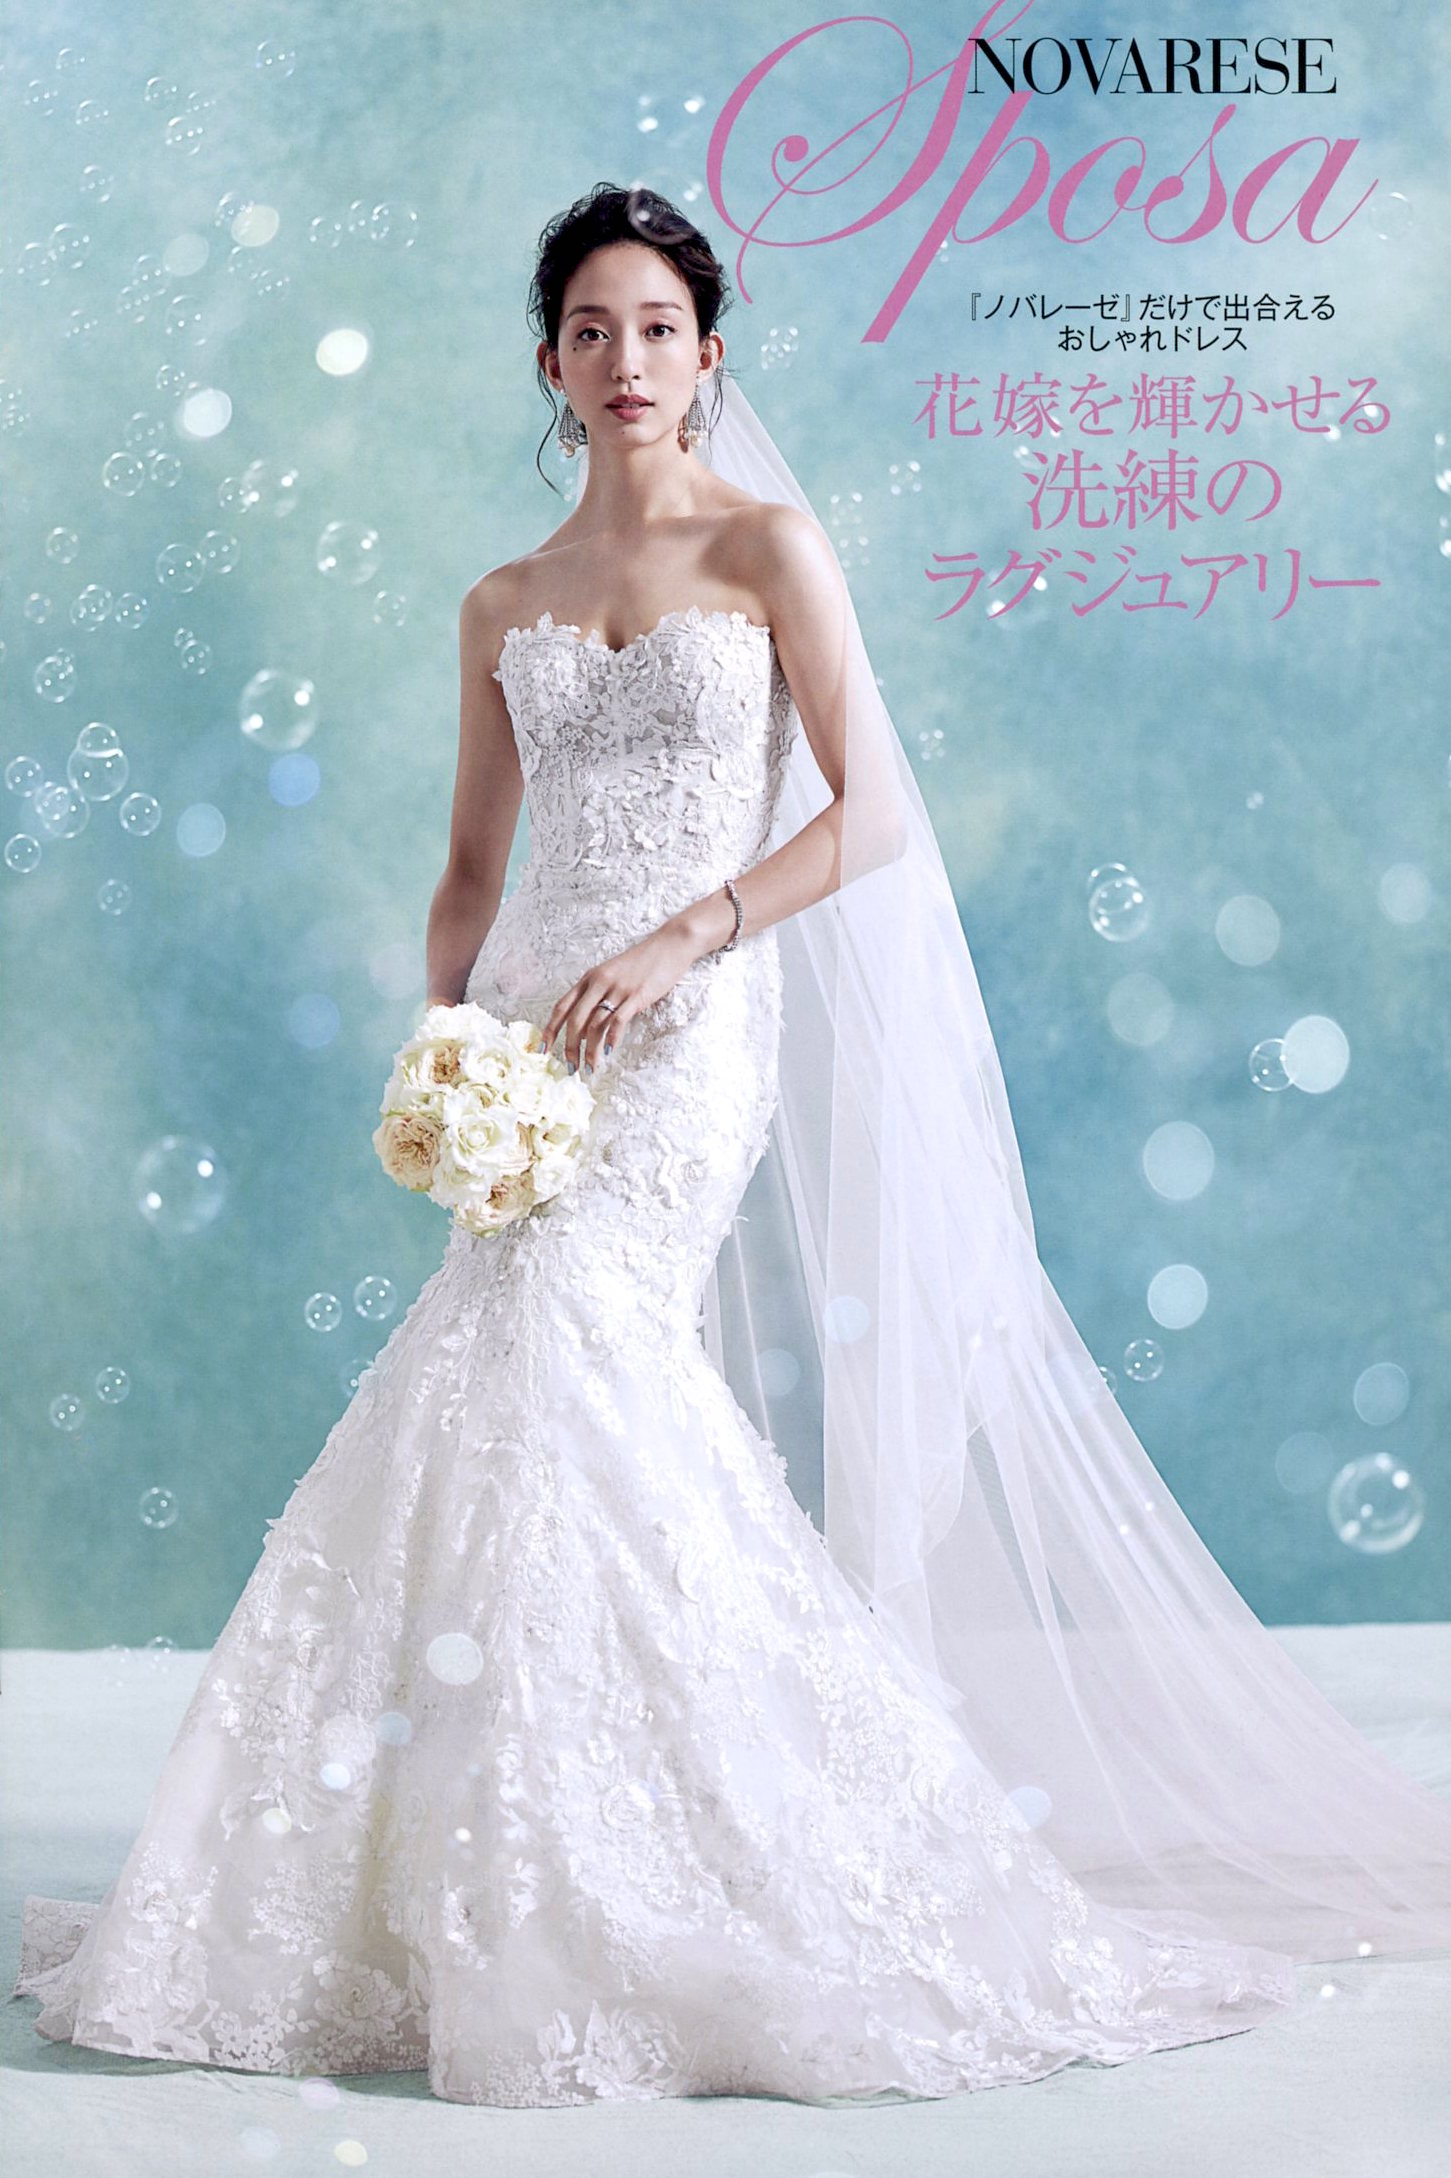 25ans Wedding  KEN YOSHIMURA HAIR